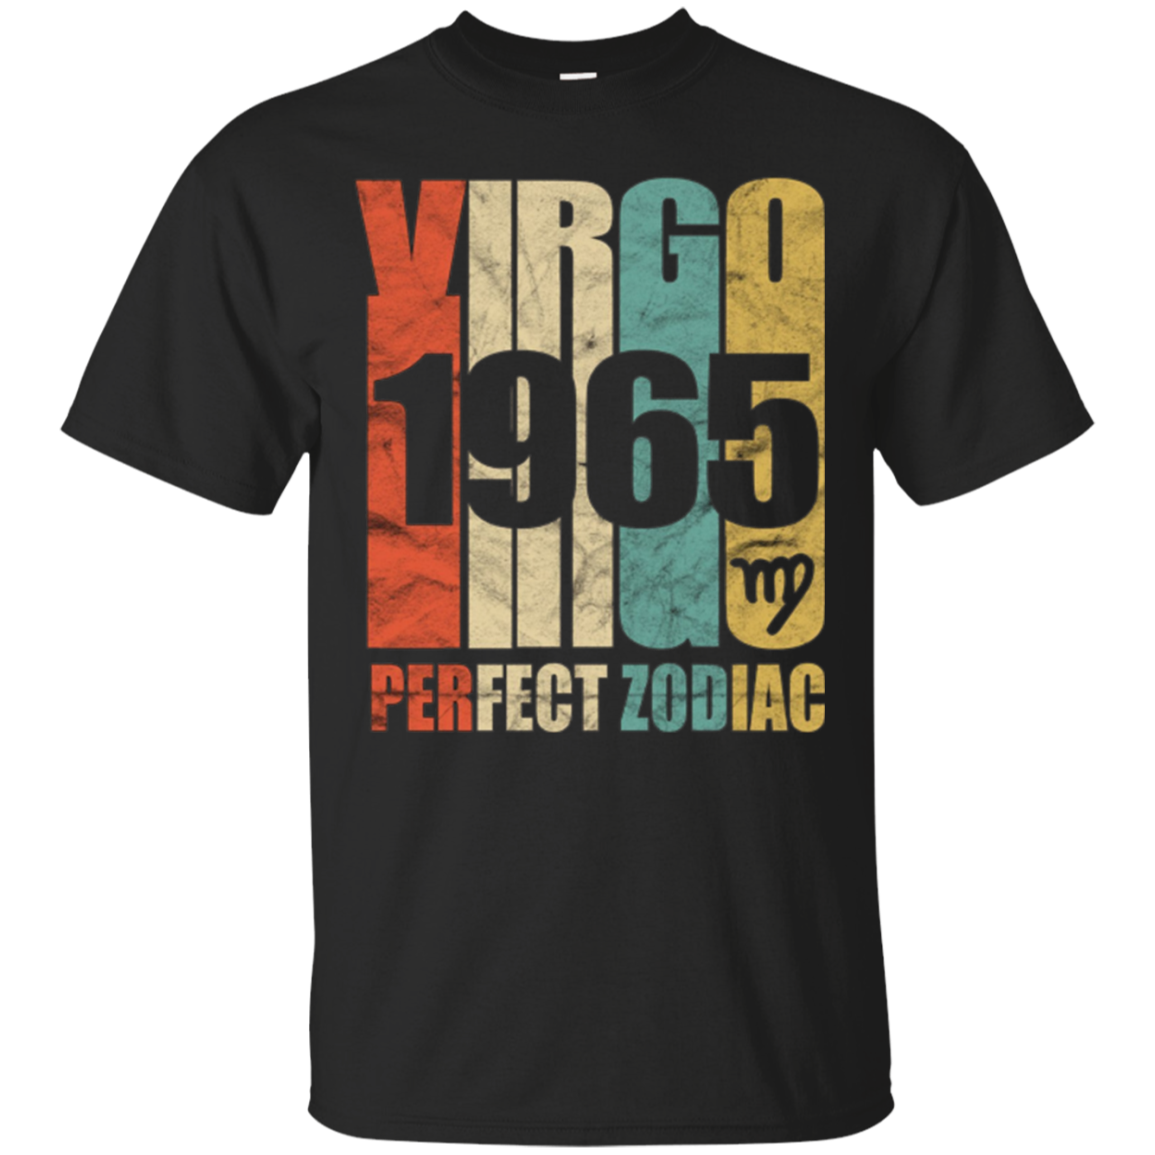 Vintage Virgo 1965 T-Shirt 52 yrs old Bday 52nd Birthday Tee